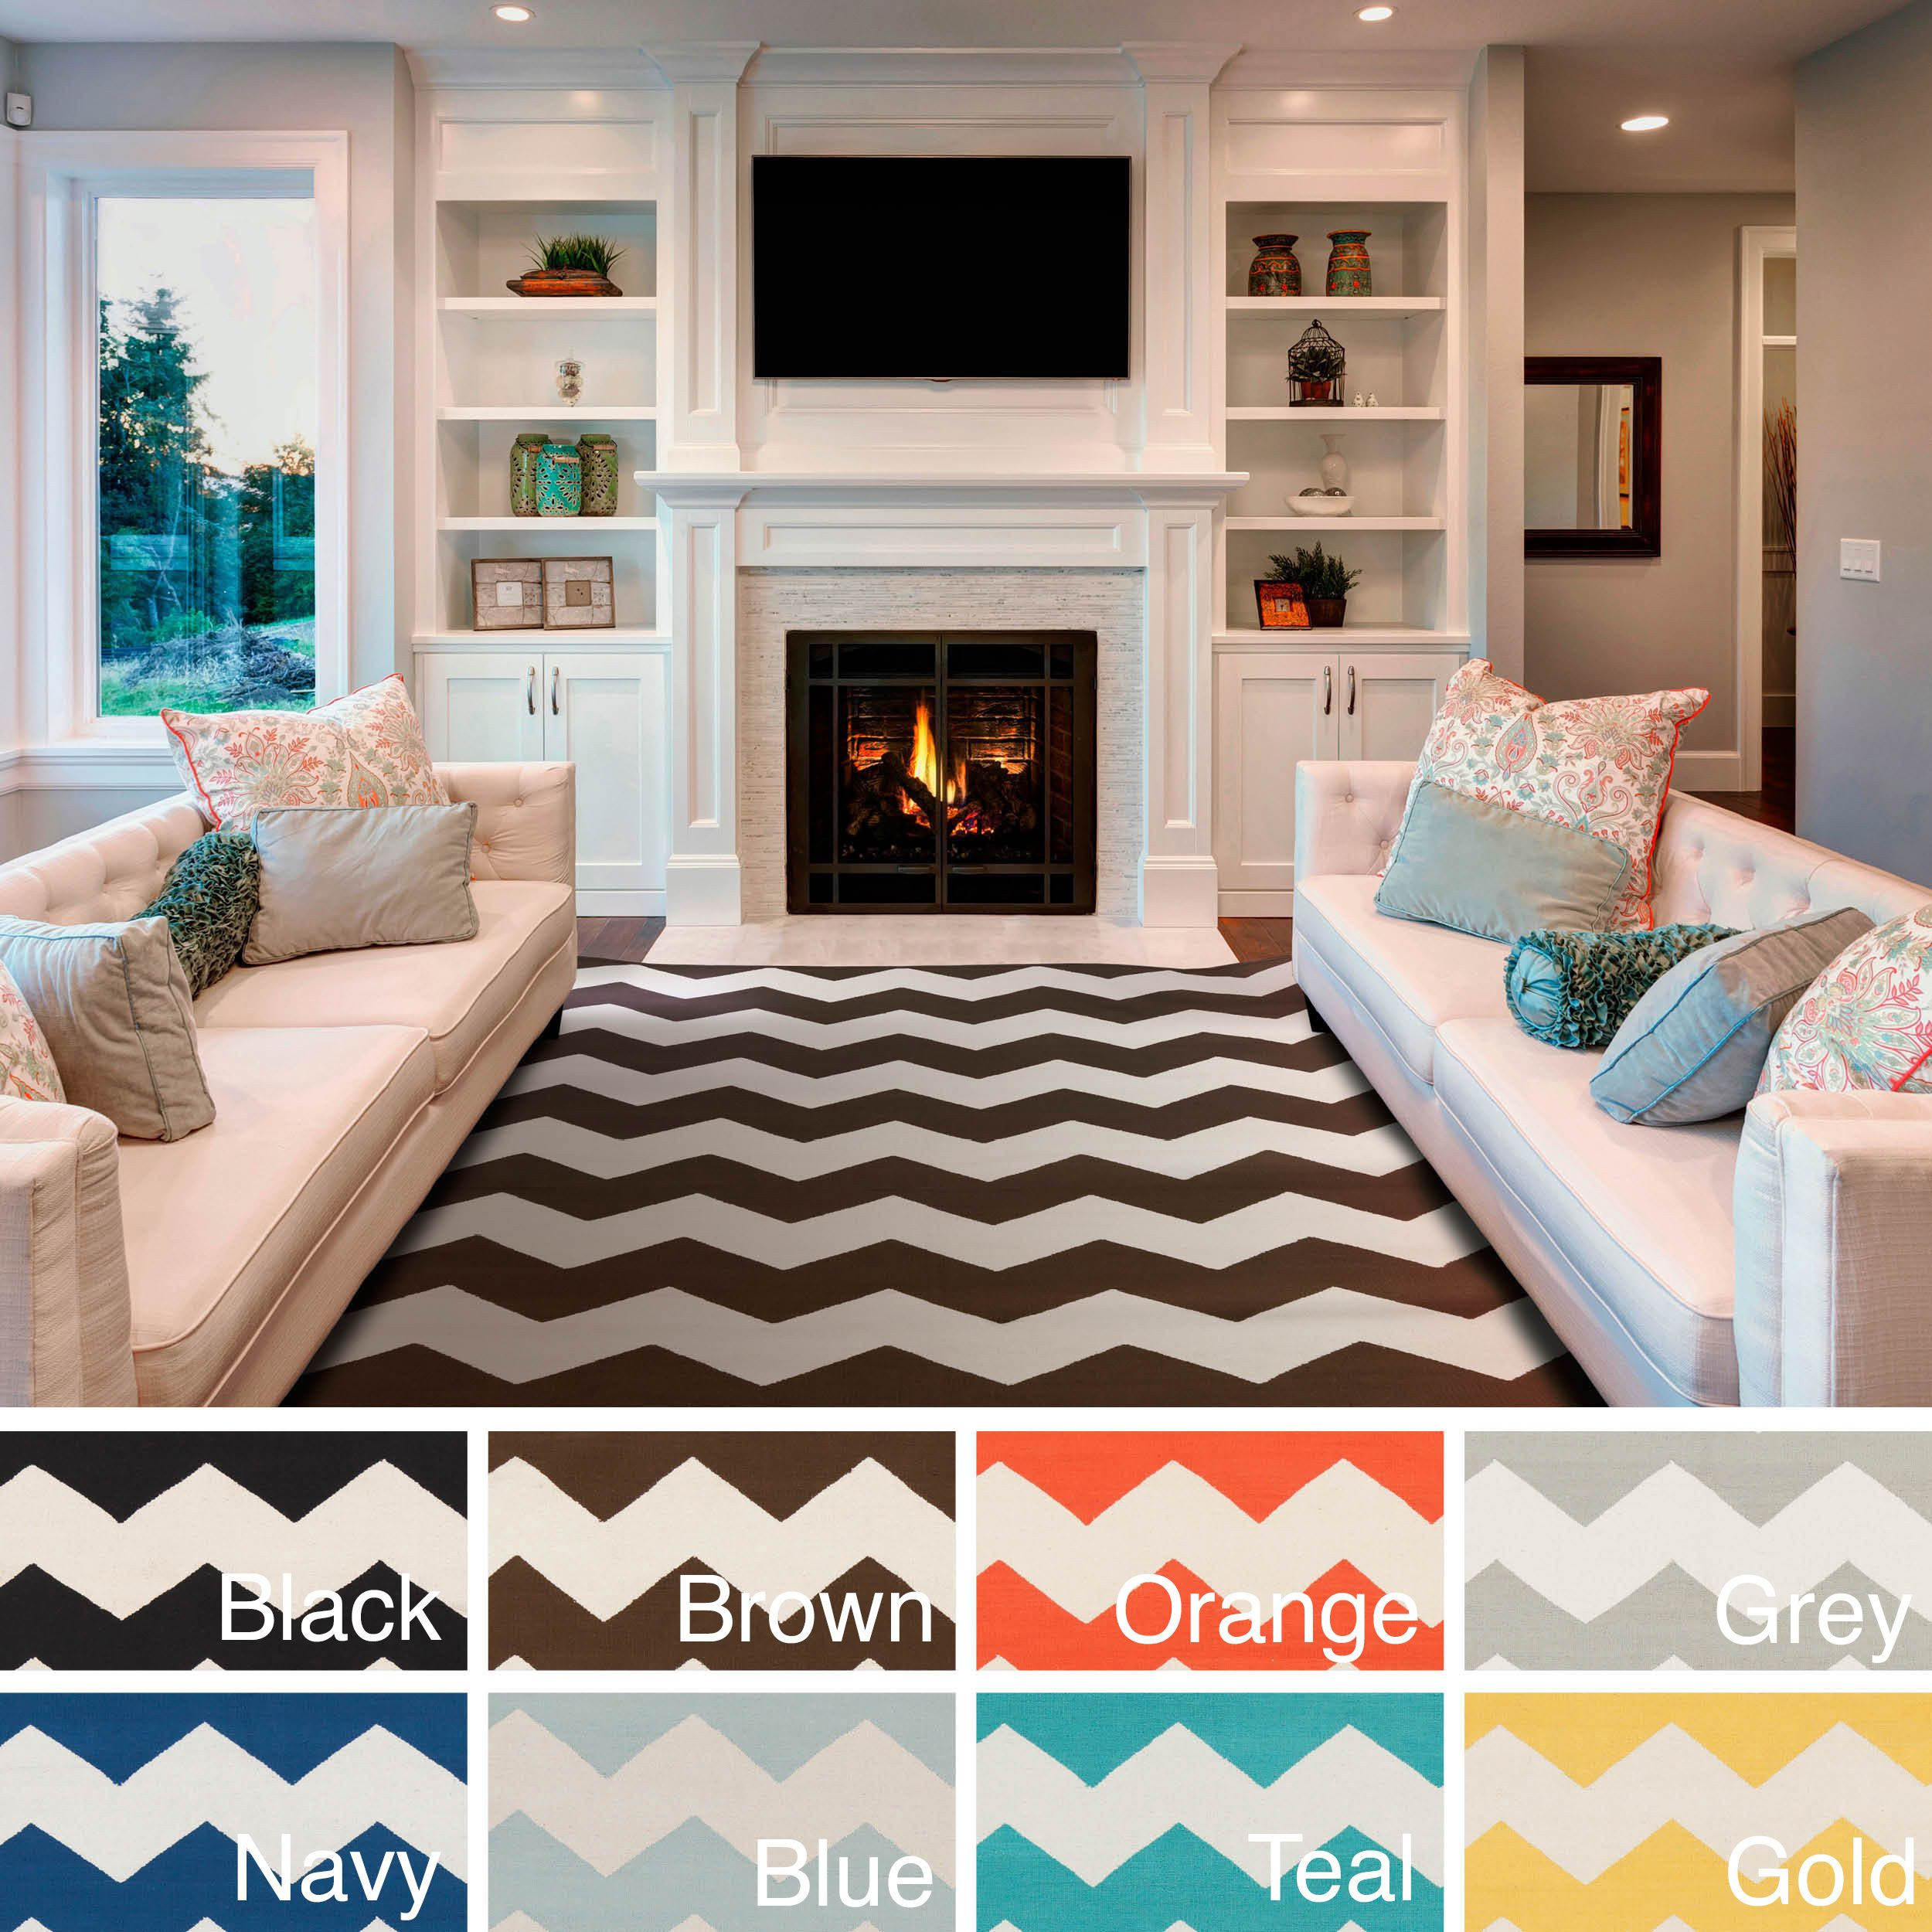 Add Bold Style To Your Decor With This Contemporary Chevron Patterned Rug Hand Woven